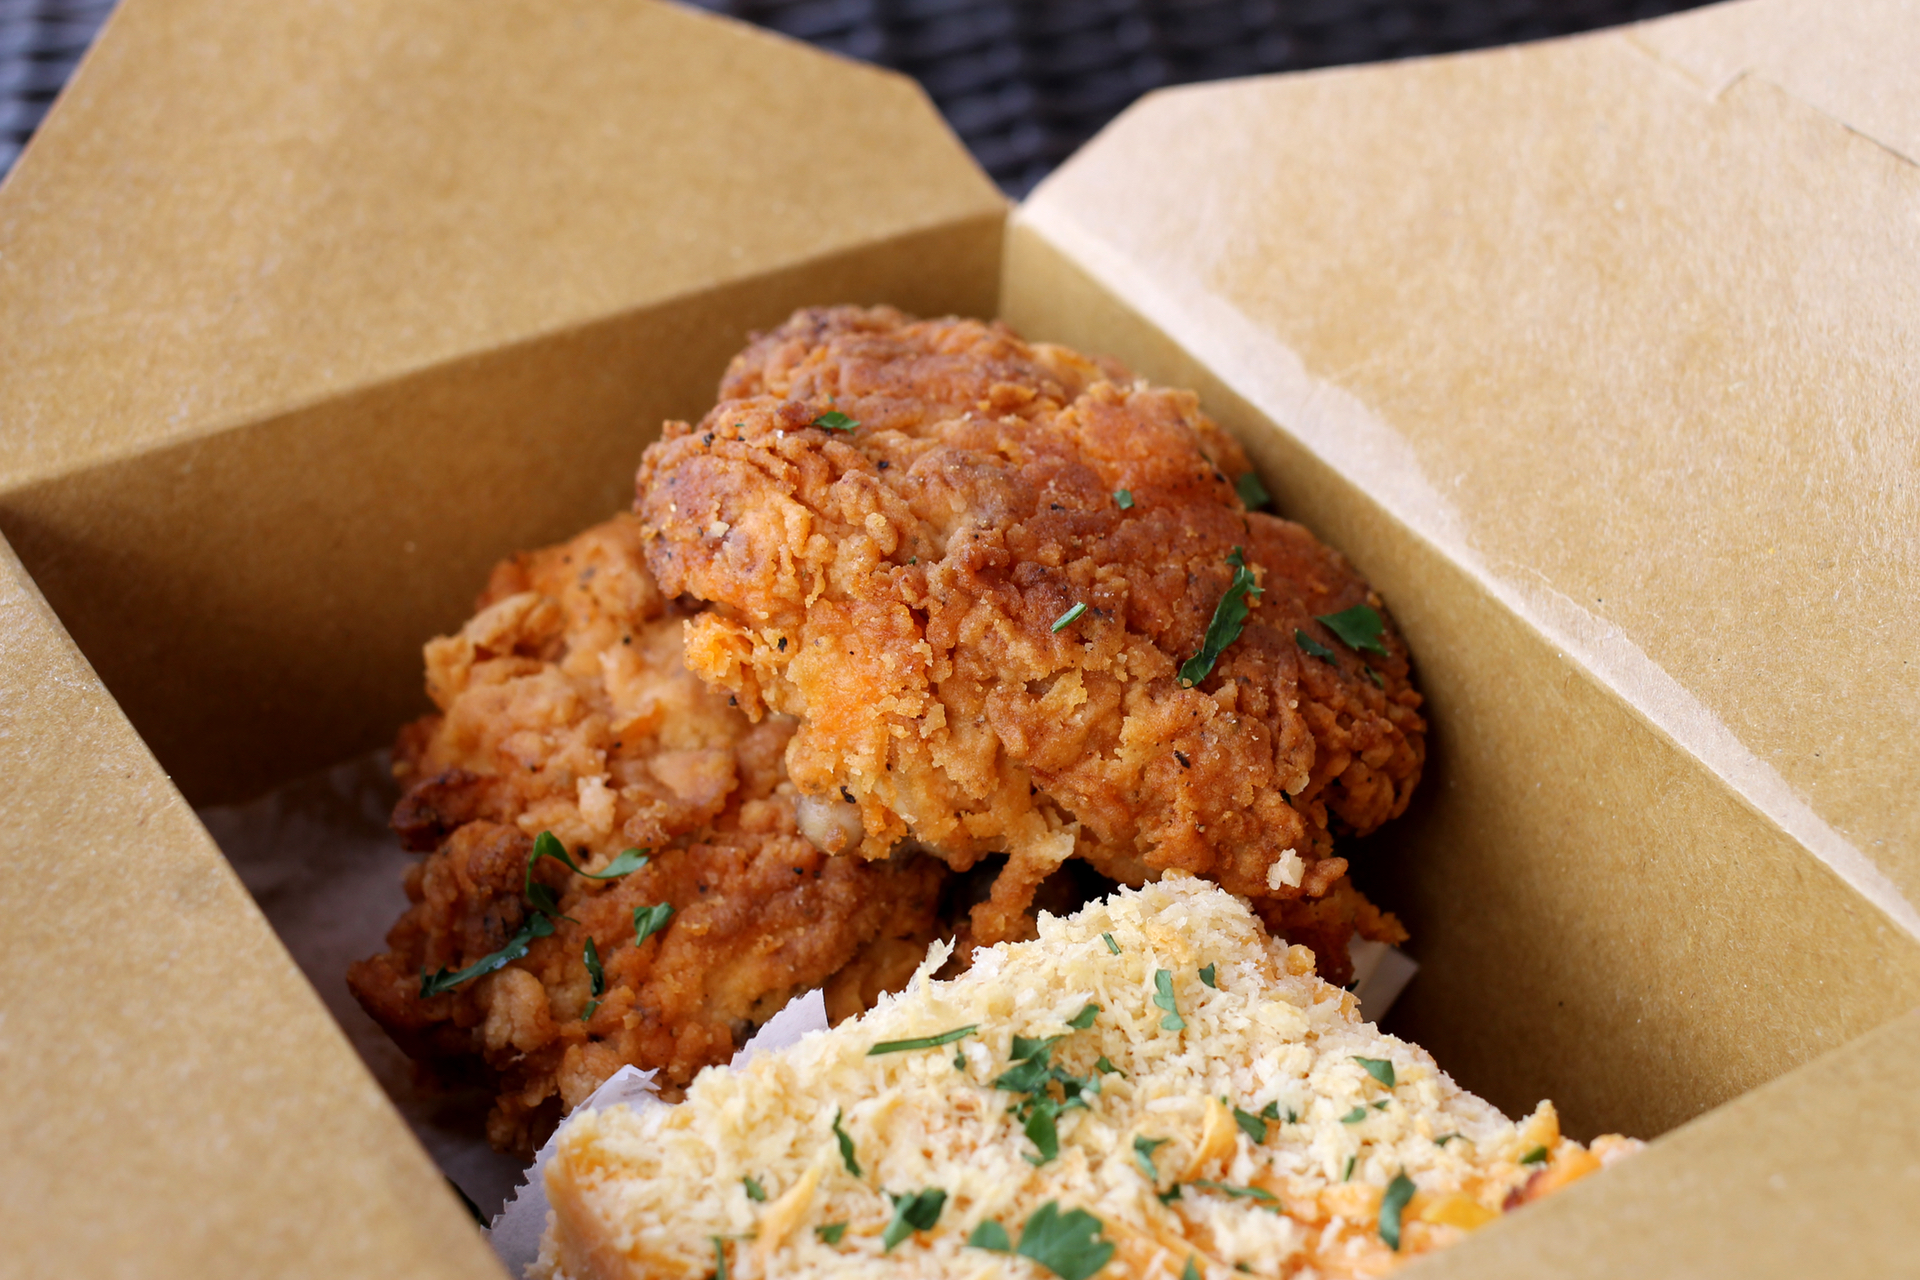 Fried chicken and macaroni and cheese from Zella's.